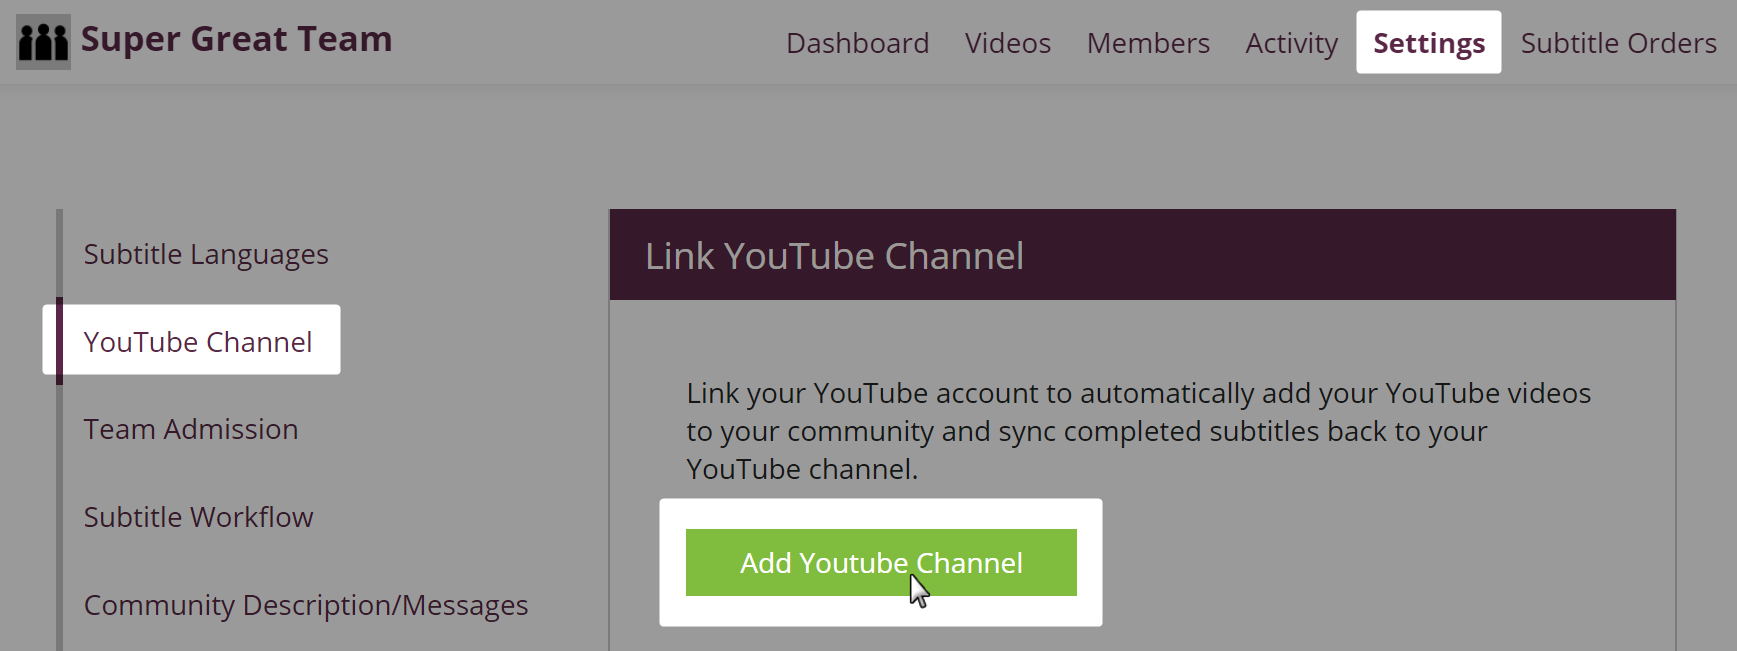 YouTube Channel Settings page on Amara Community with page navigation and button highlighted for adding a YouTube channel